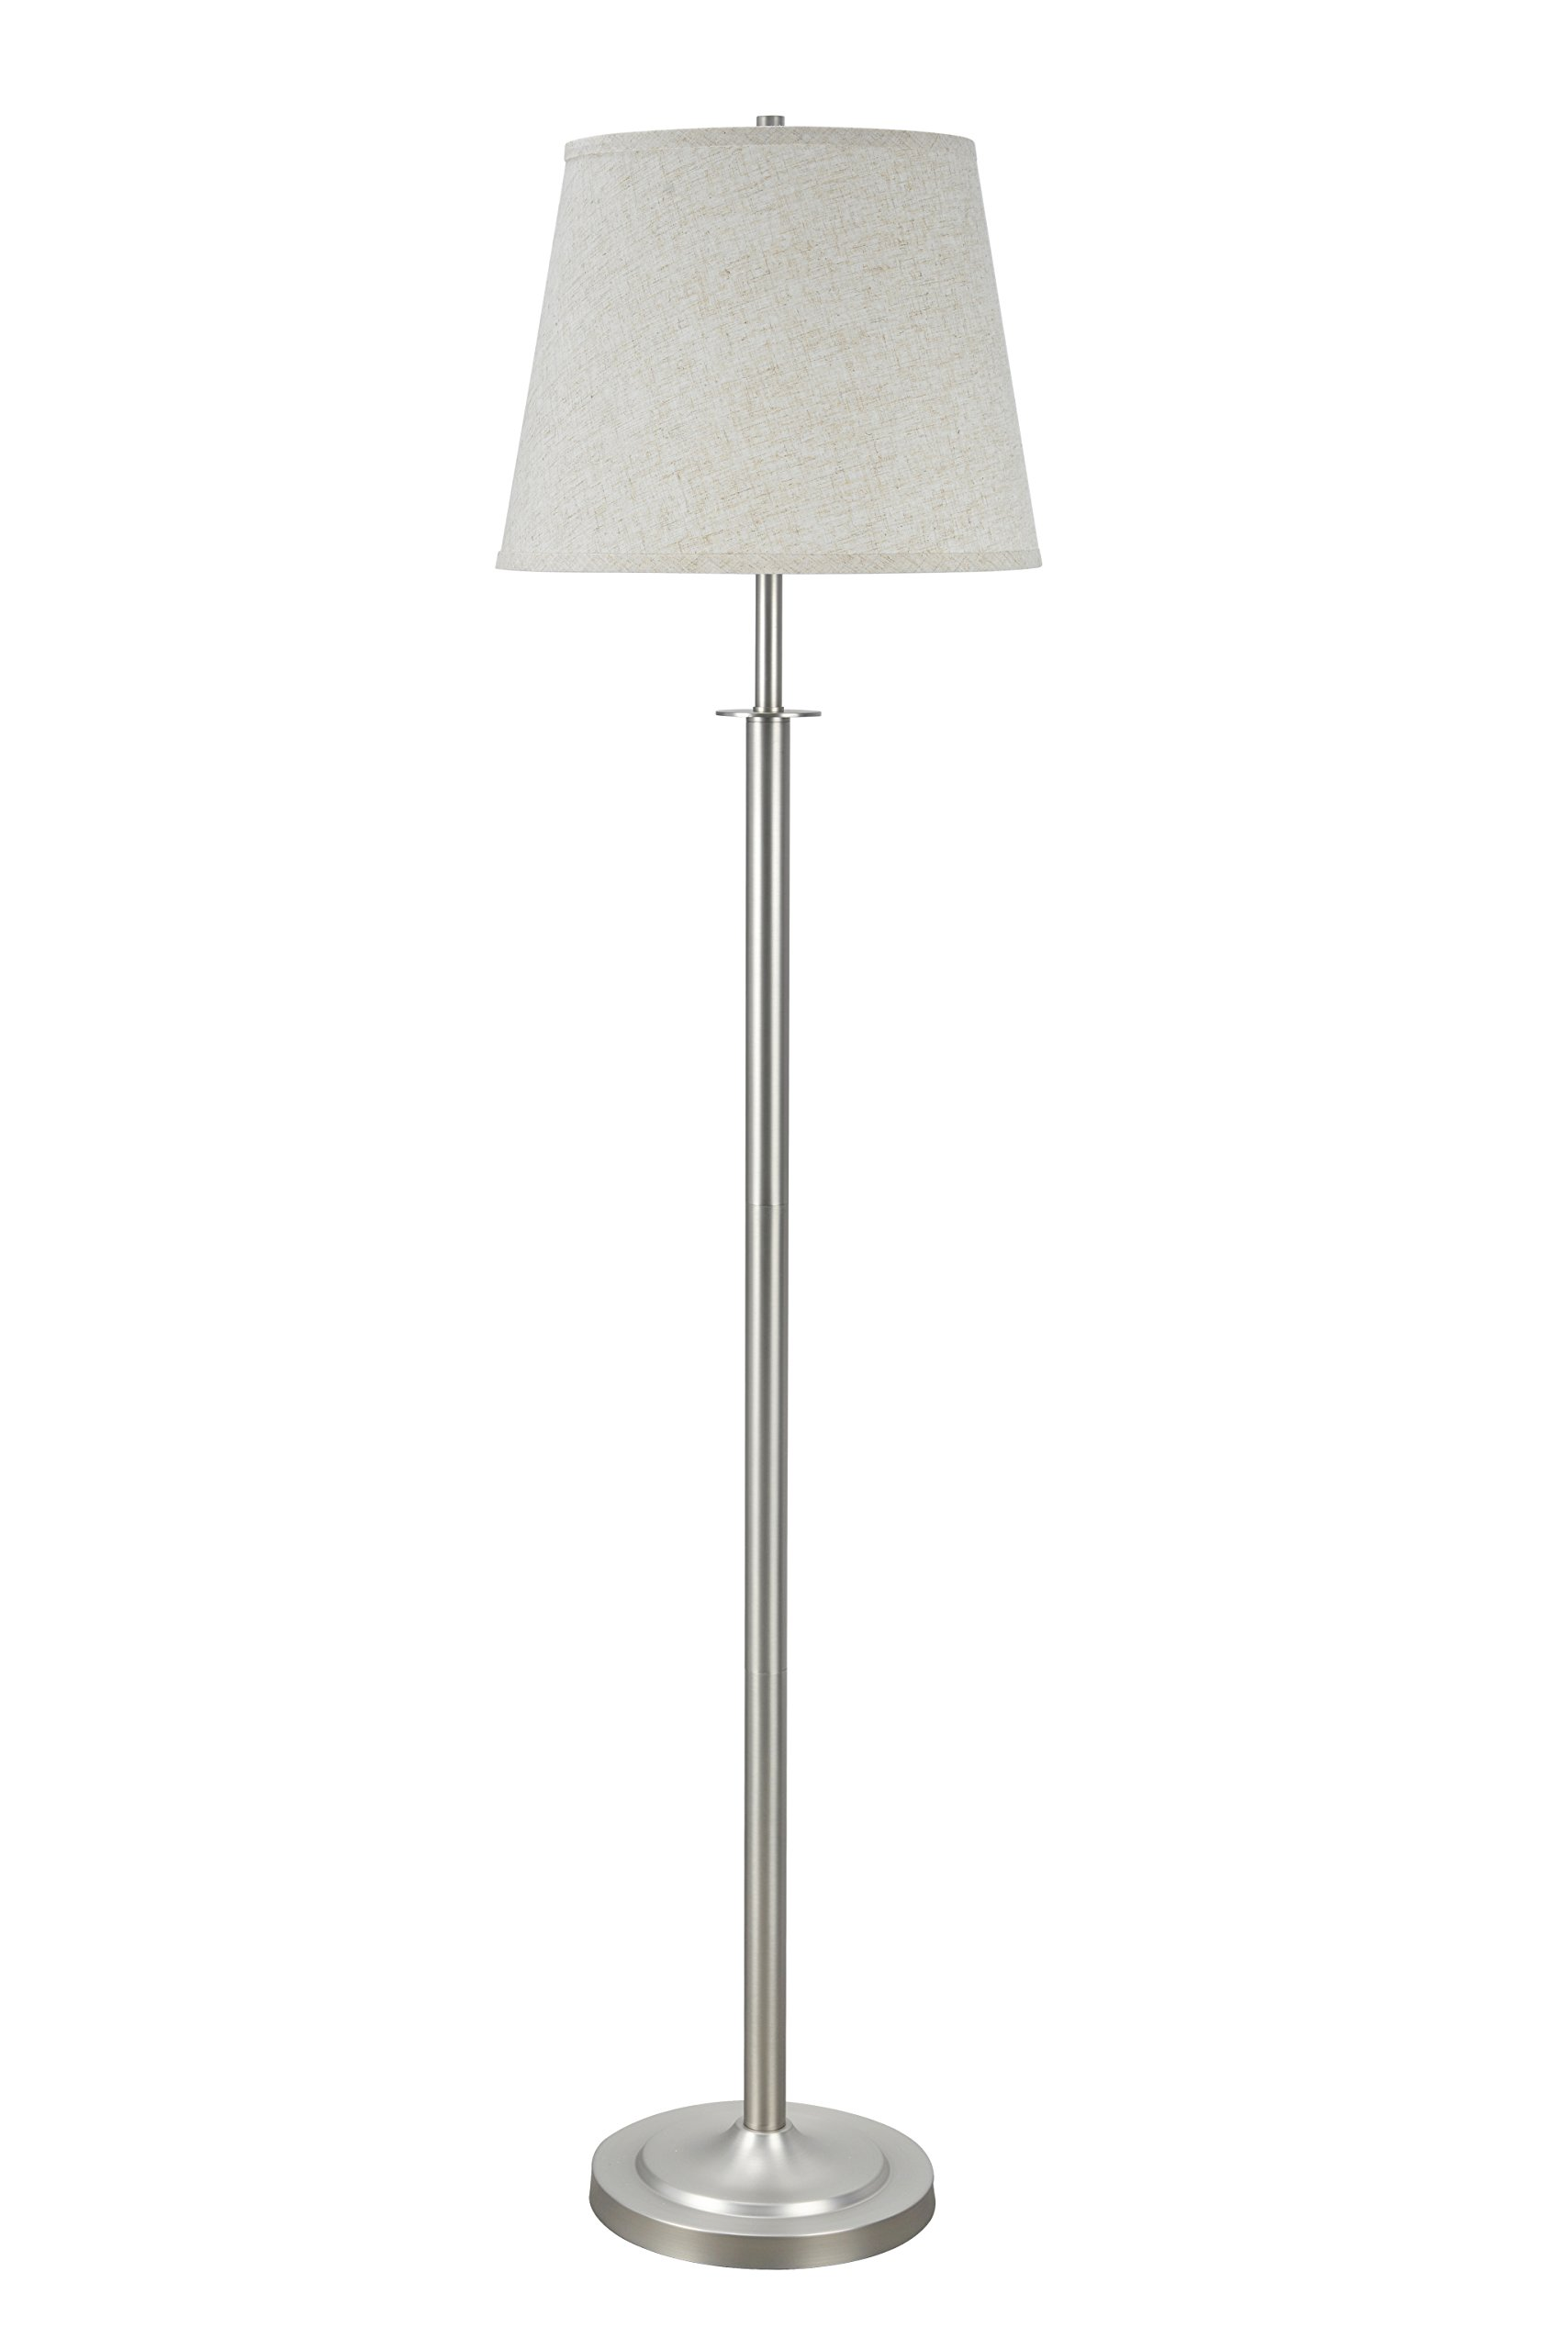 Aspen Creative 45005, 1-Light Metal Floor Lamp, Transitional Design in Matte Brushed Nickel, 60'' High